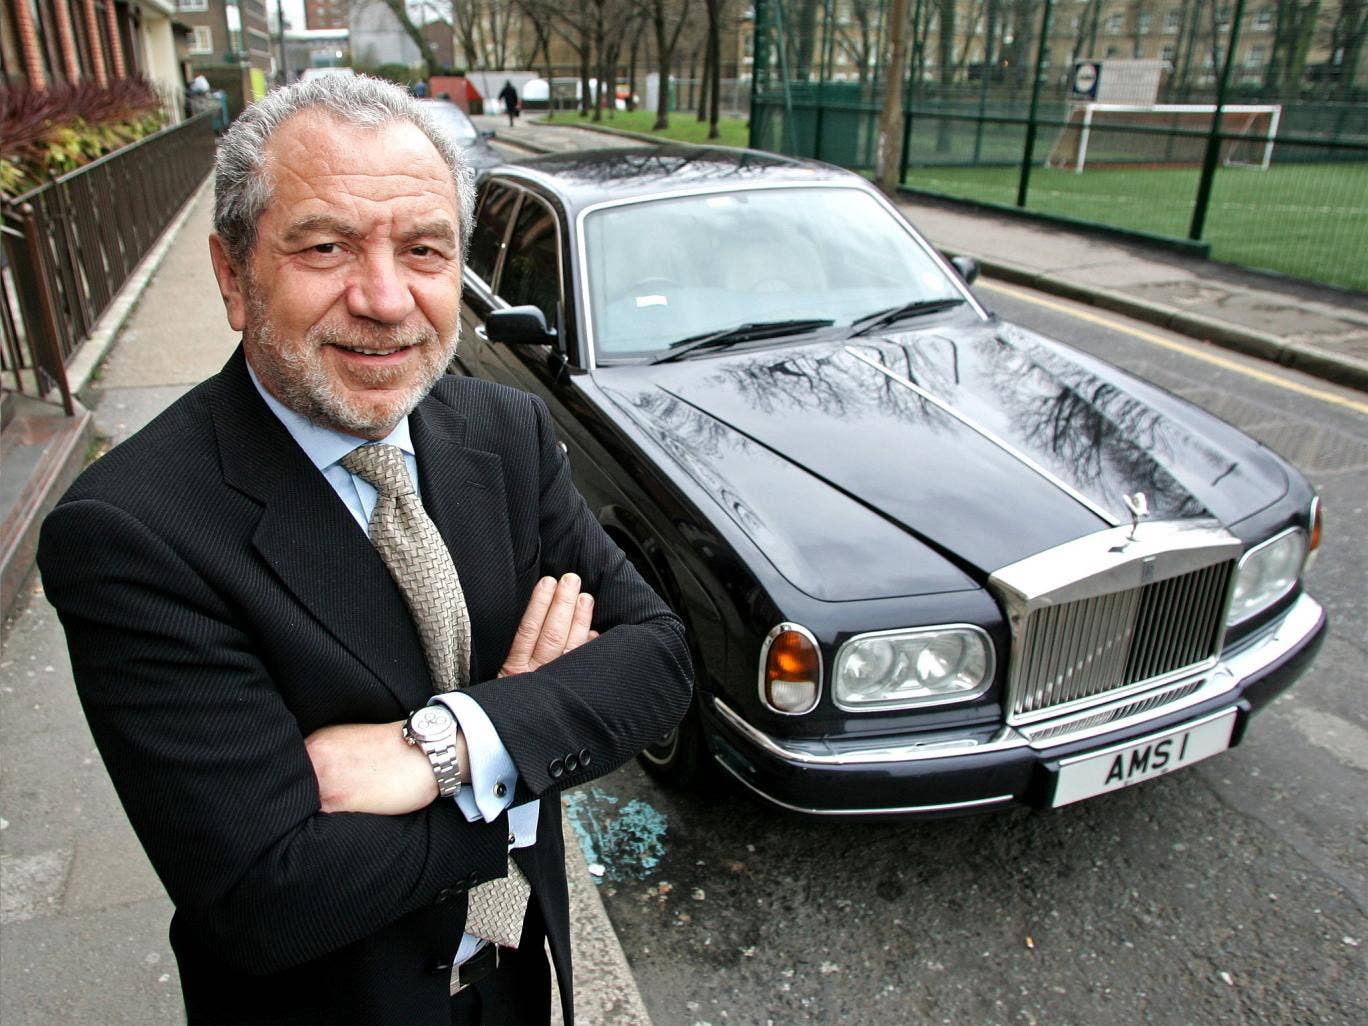 Sir Alan has swapped his old Rolls-Royce Phantom (pictured) for a cheaper model